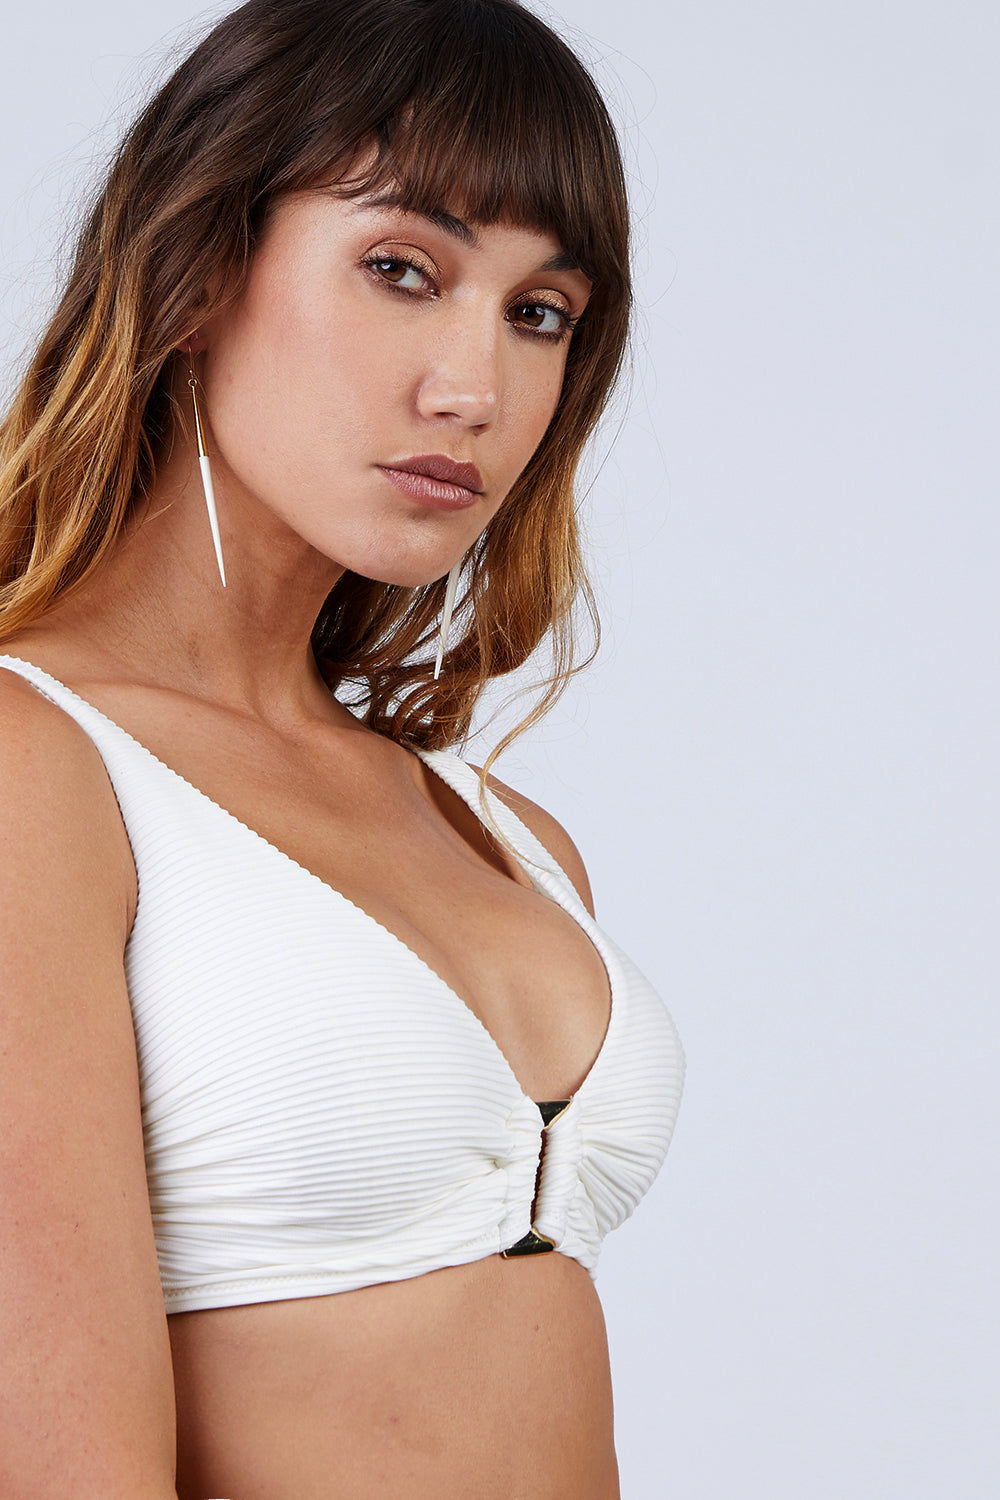 HEIDI KLEIN D-G Rectangle Ribbed  Bikini Top - Cream White Bikini Top | Cream White|  Heidi Klein D-G Rectangle Ribbed  Bikini Top - Cream White. Features:  Hardware at centre front and bone at side seam help with support and provide a luxurious finish. Underwired. The side seams and underarm coverage  provide support The bust is lined with sculpting fabric and the cradle is additionally lined in powermesh, thus making the top very supportive The bottom band ties are an adjustable tie back. The shoulder straps are adjustable in length and elasticated for comfort. Front View